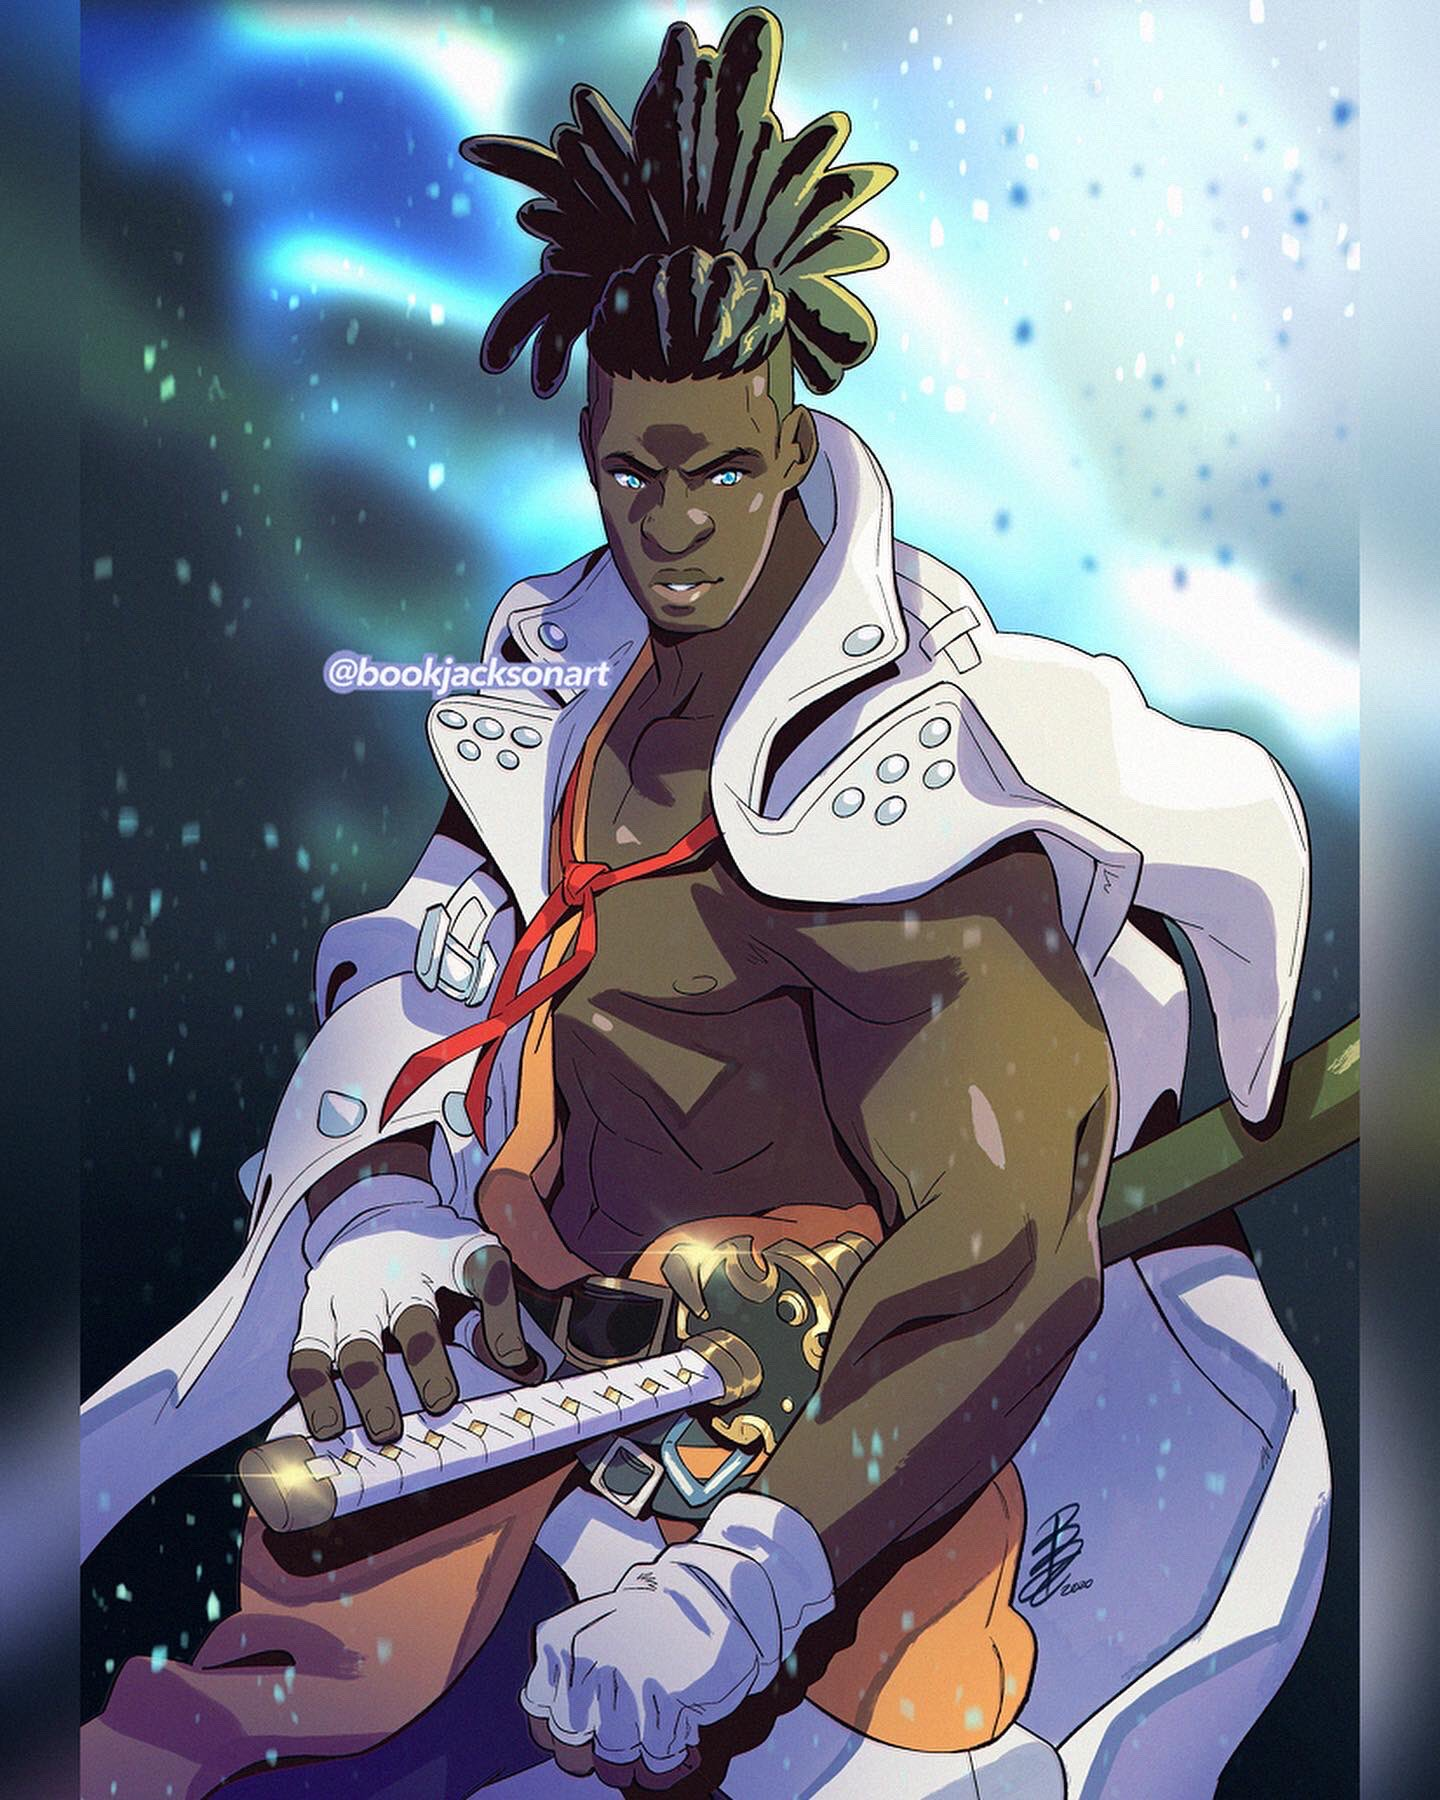 1boy abs arm_out_of_sleeve belt blue_eyes book_jackson commentary dark_skin dark_skinned_male english_commentary fighting_stance fingerless_gloves gloves guilty_gear guilty_gear_strive hairlocs hand_on_hilt highres jacket katana lips long_hair male_focus muscle nagoriyuki nose ponytail scabbard sheath sheathed solo standing sword undercut very_dark_skin weapon white_gloves white_jacket